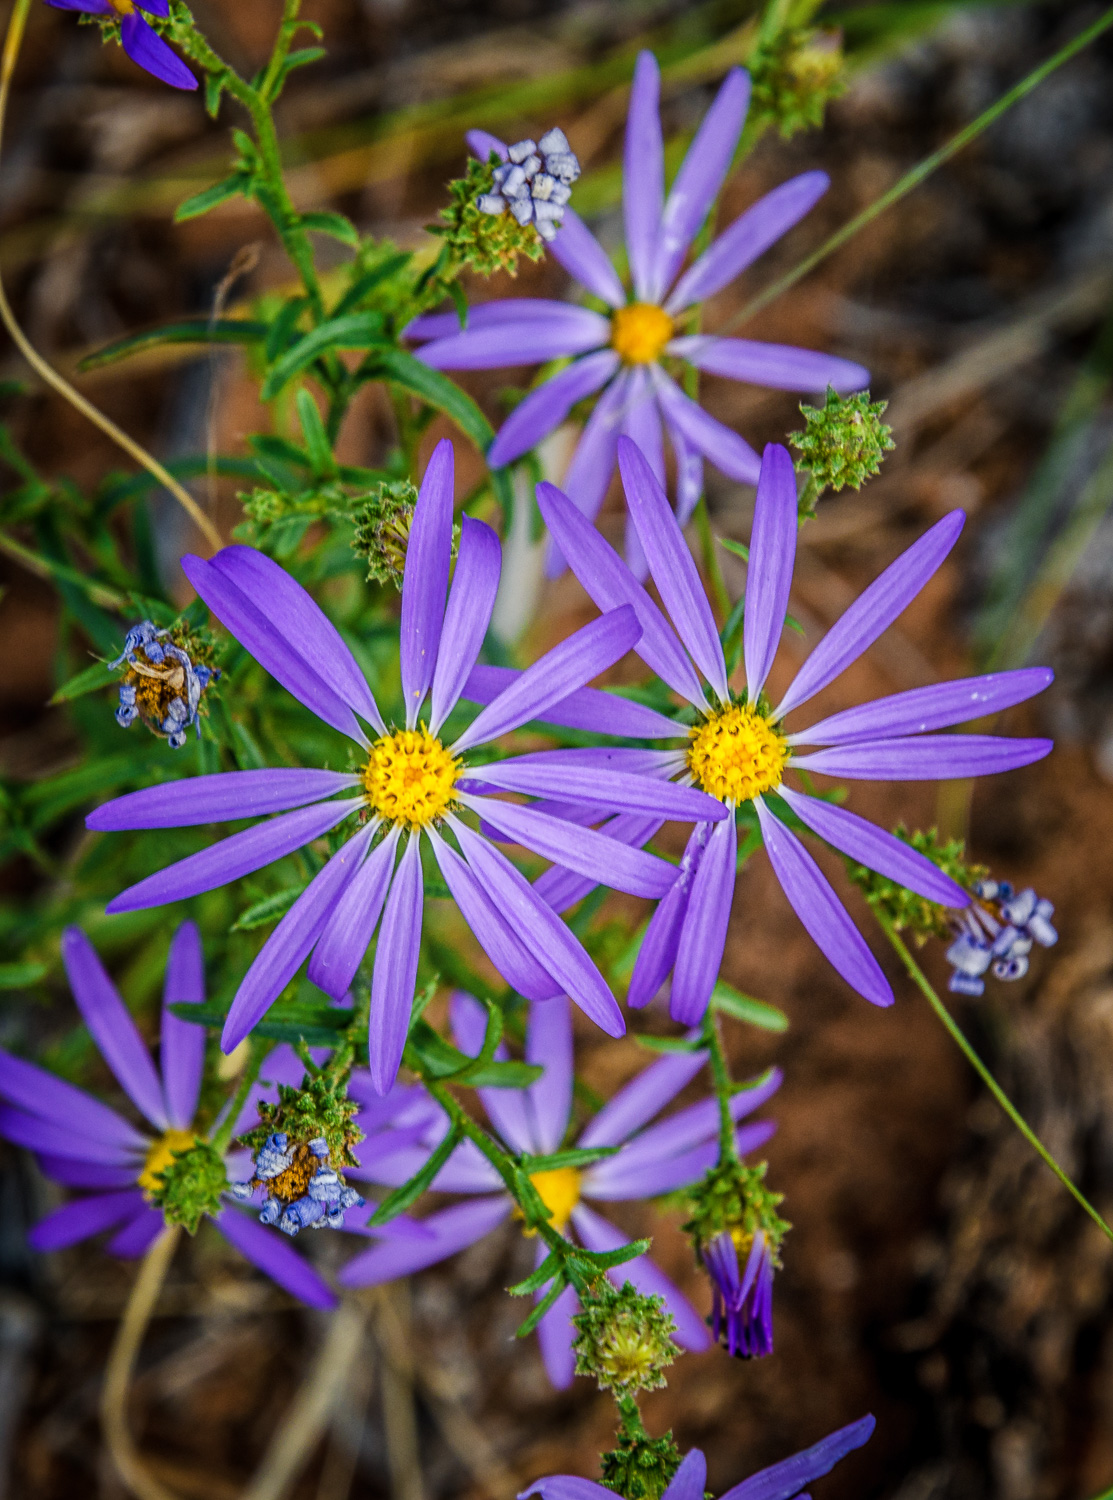 Tansyleaf Aster